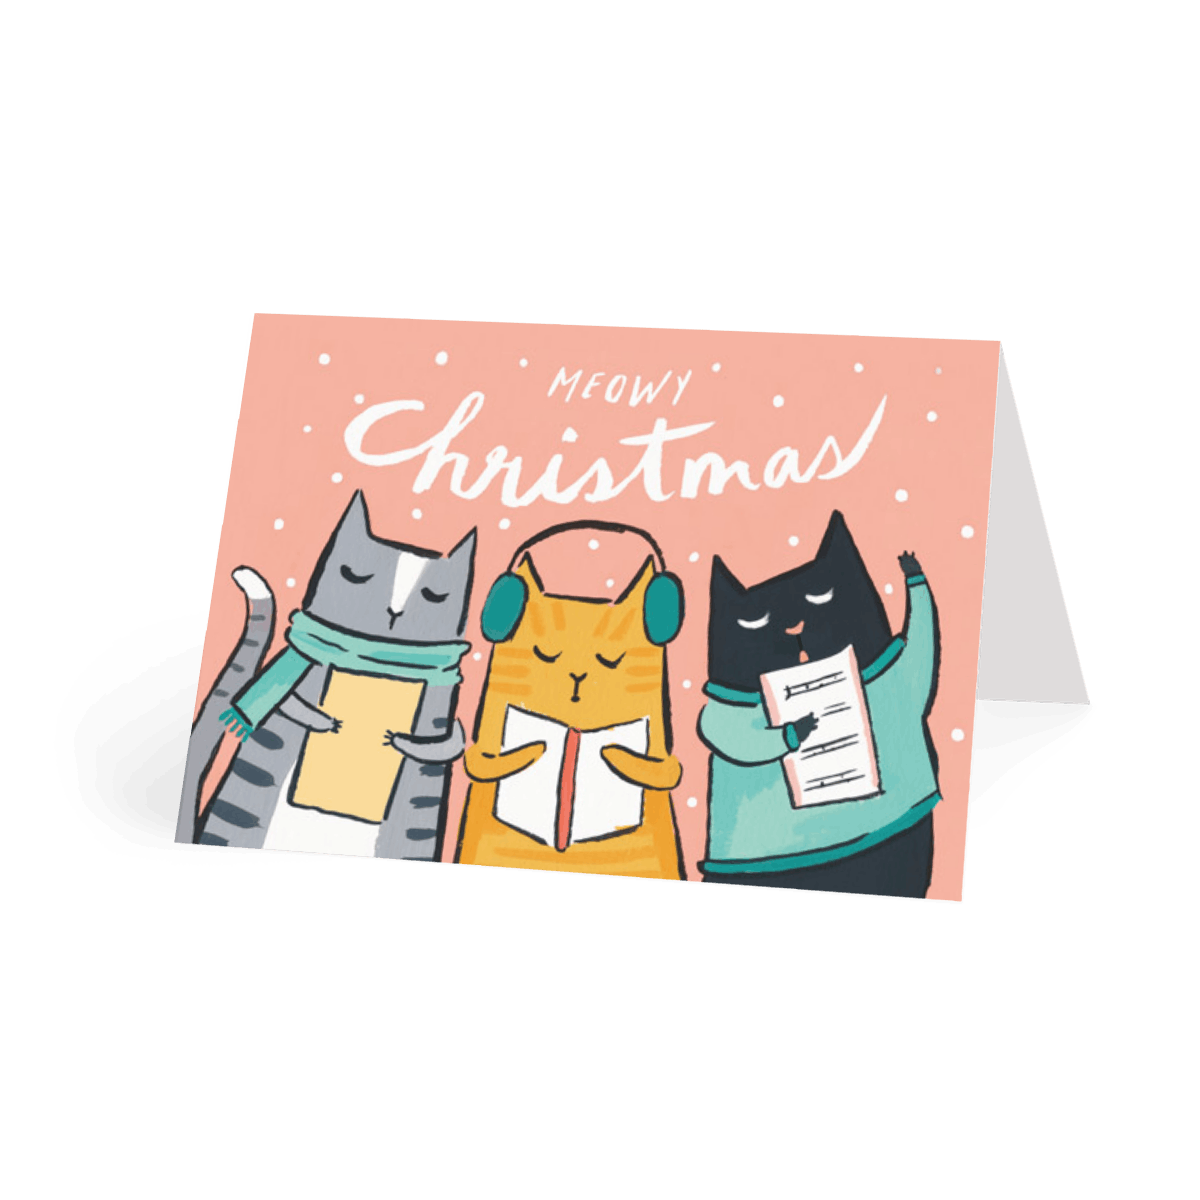 Https%3a%2f%2fwww.papier.com%2fproduct image%2f11915%2f14%2fkitty carols 3007 front 1541432578.png?ixlib=rb 1.1